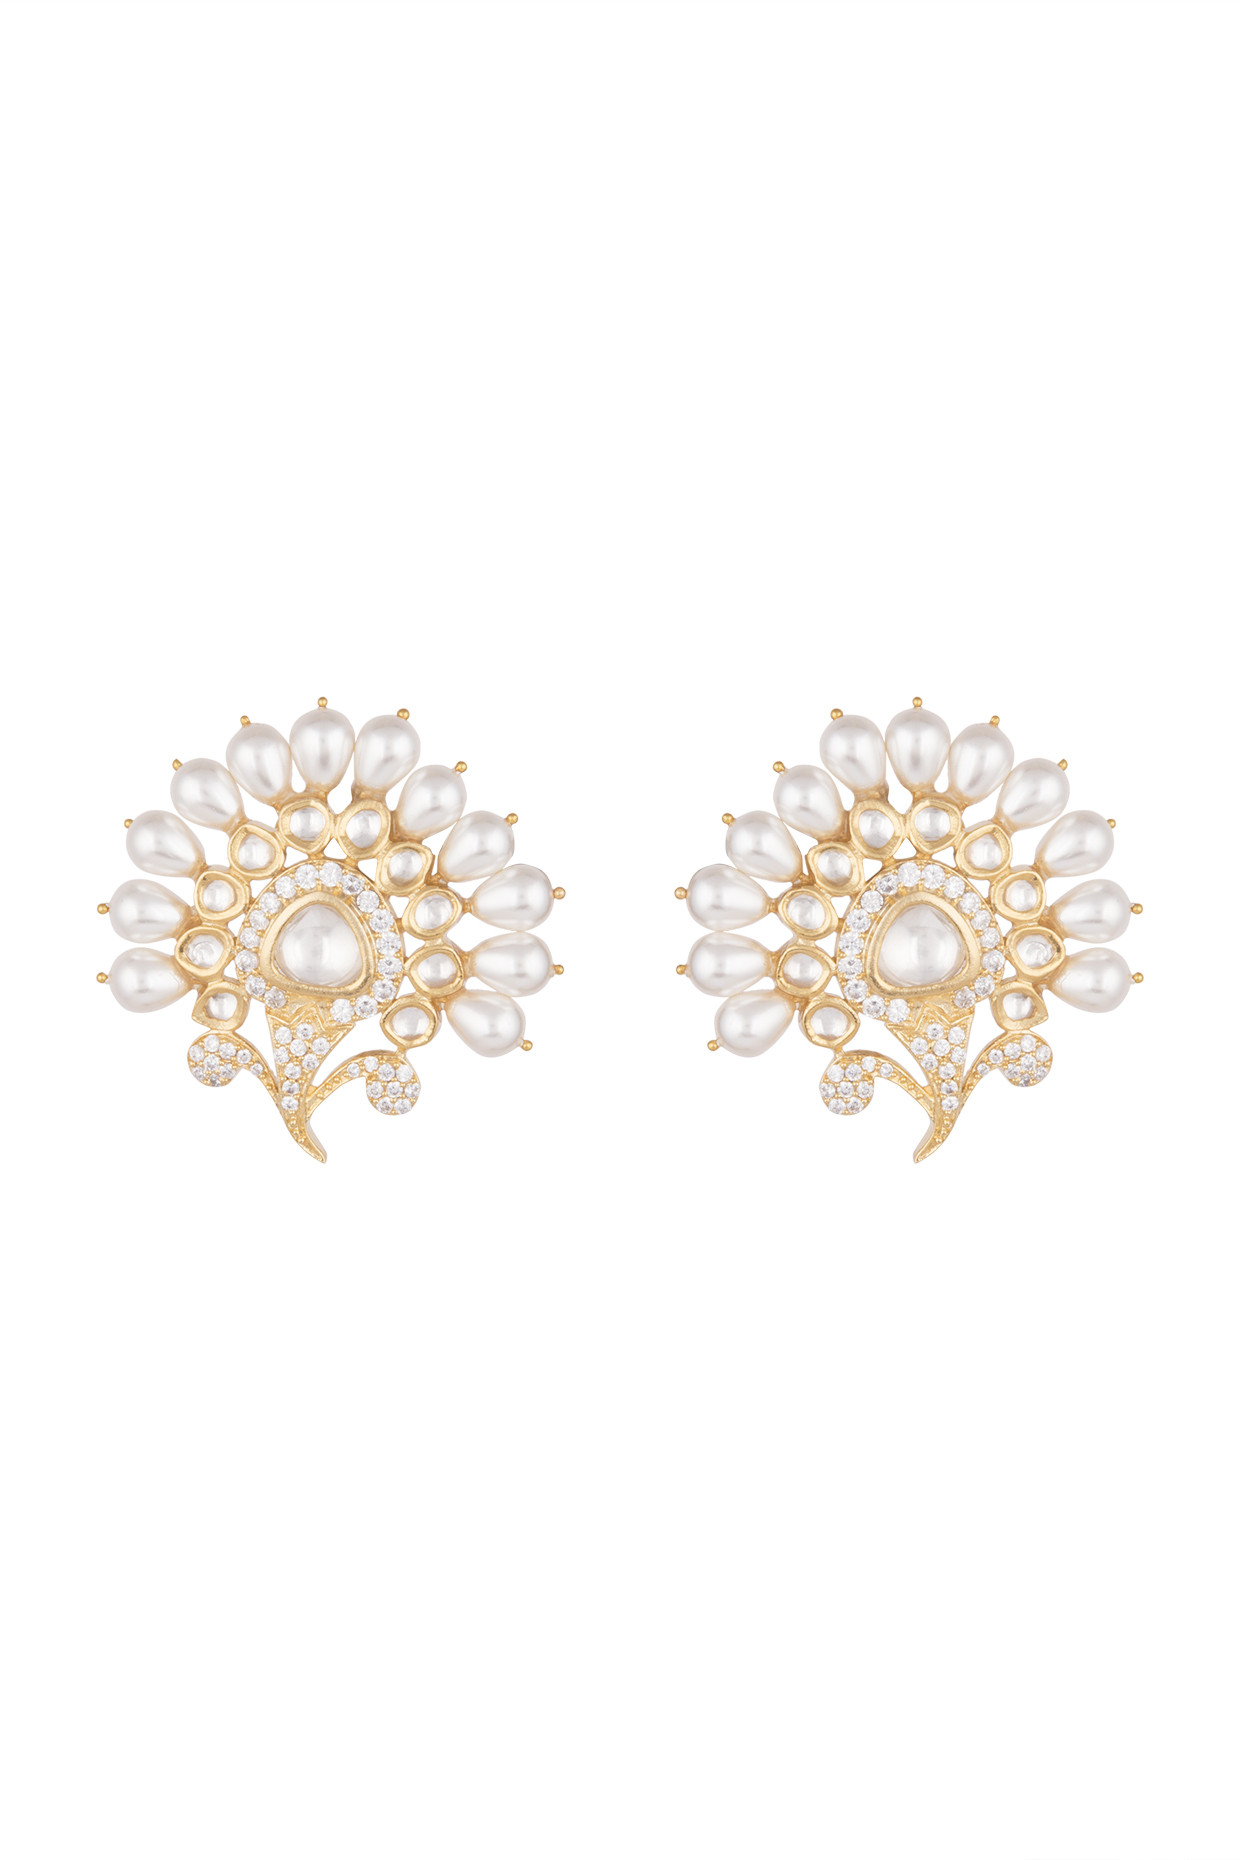 Gold Finish Faux Kundan, Pearl & Diamond Earrings by Aster-Handpicked for You